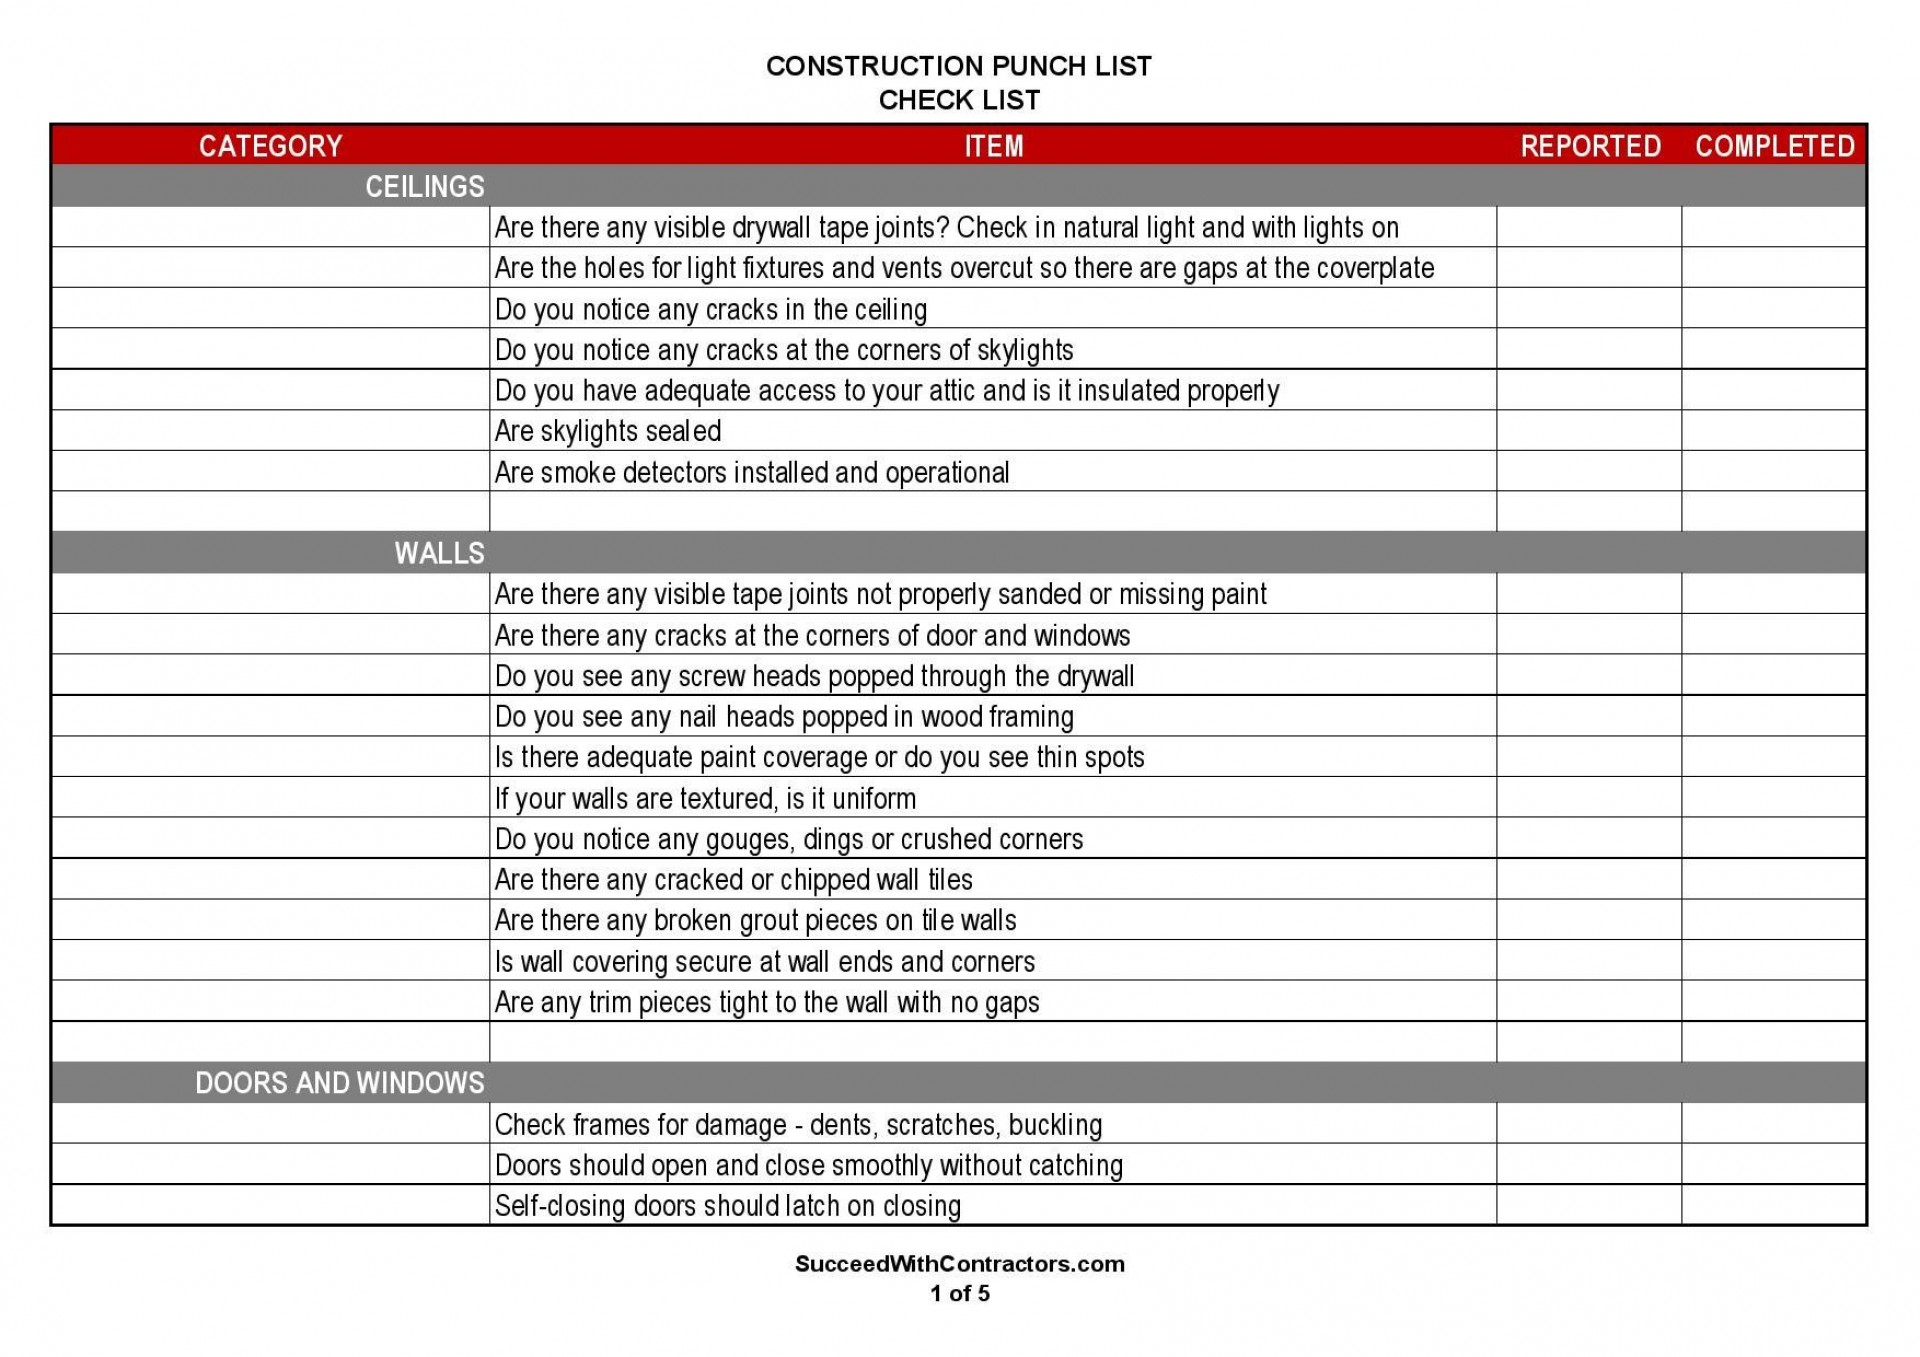 000 Magnificent Construction Punch List Template High Resolution  New Home Pdf1920